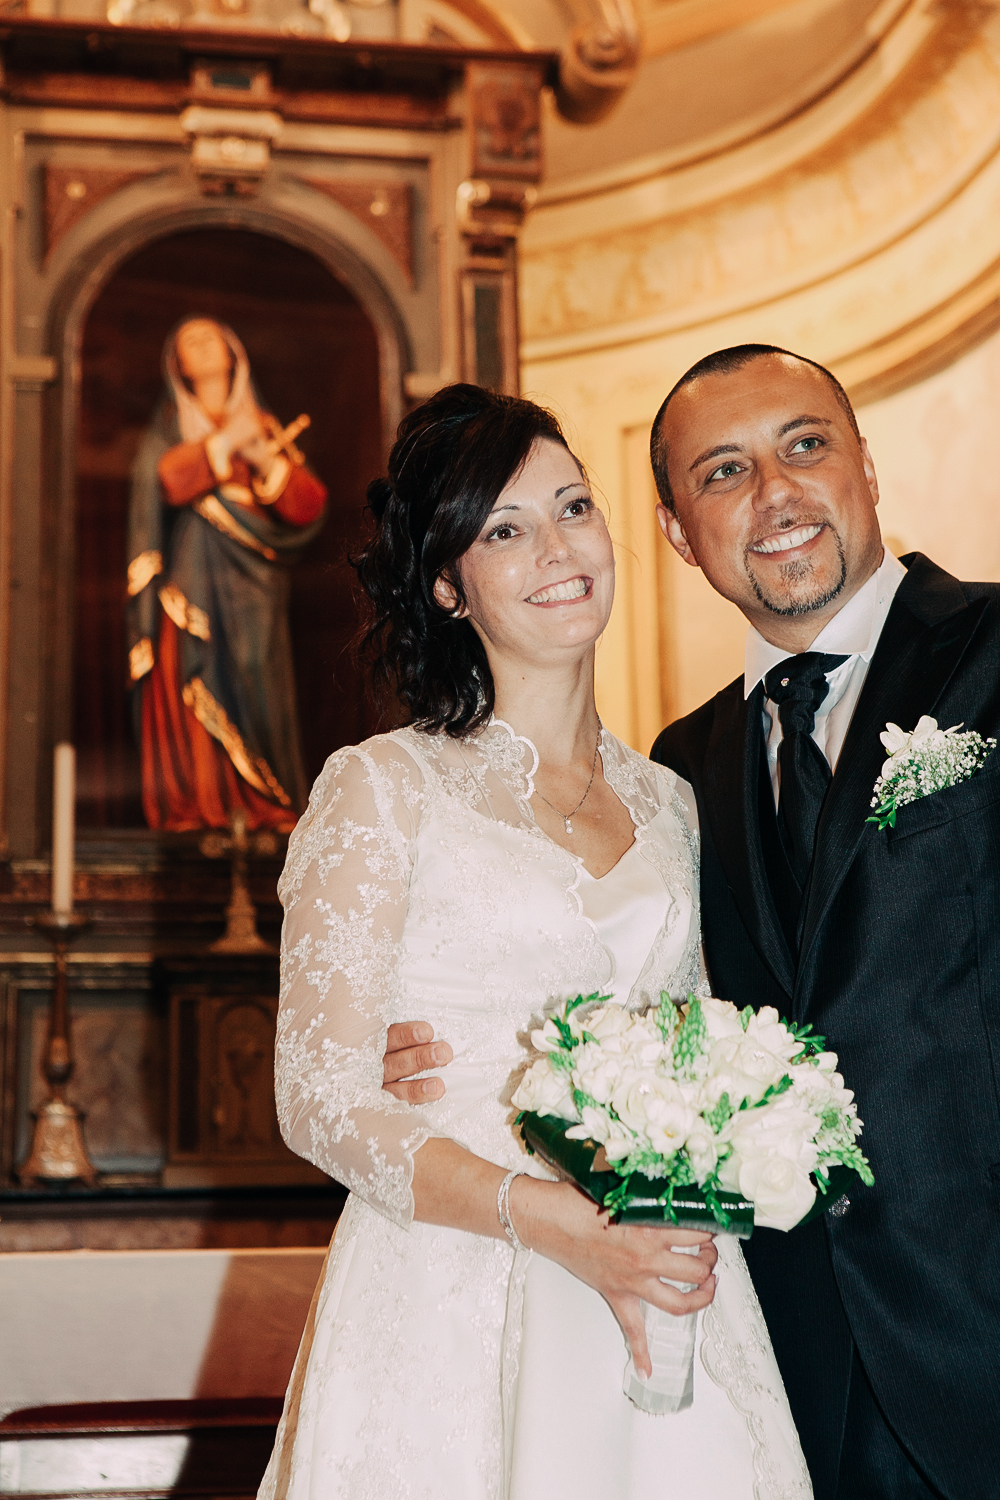 Wedding06_Paola_Meloni_018.jpg